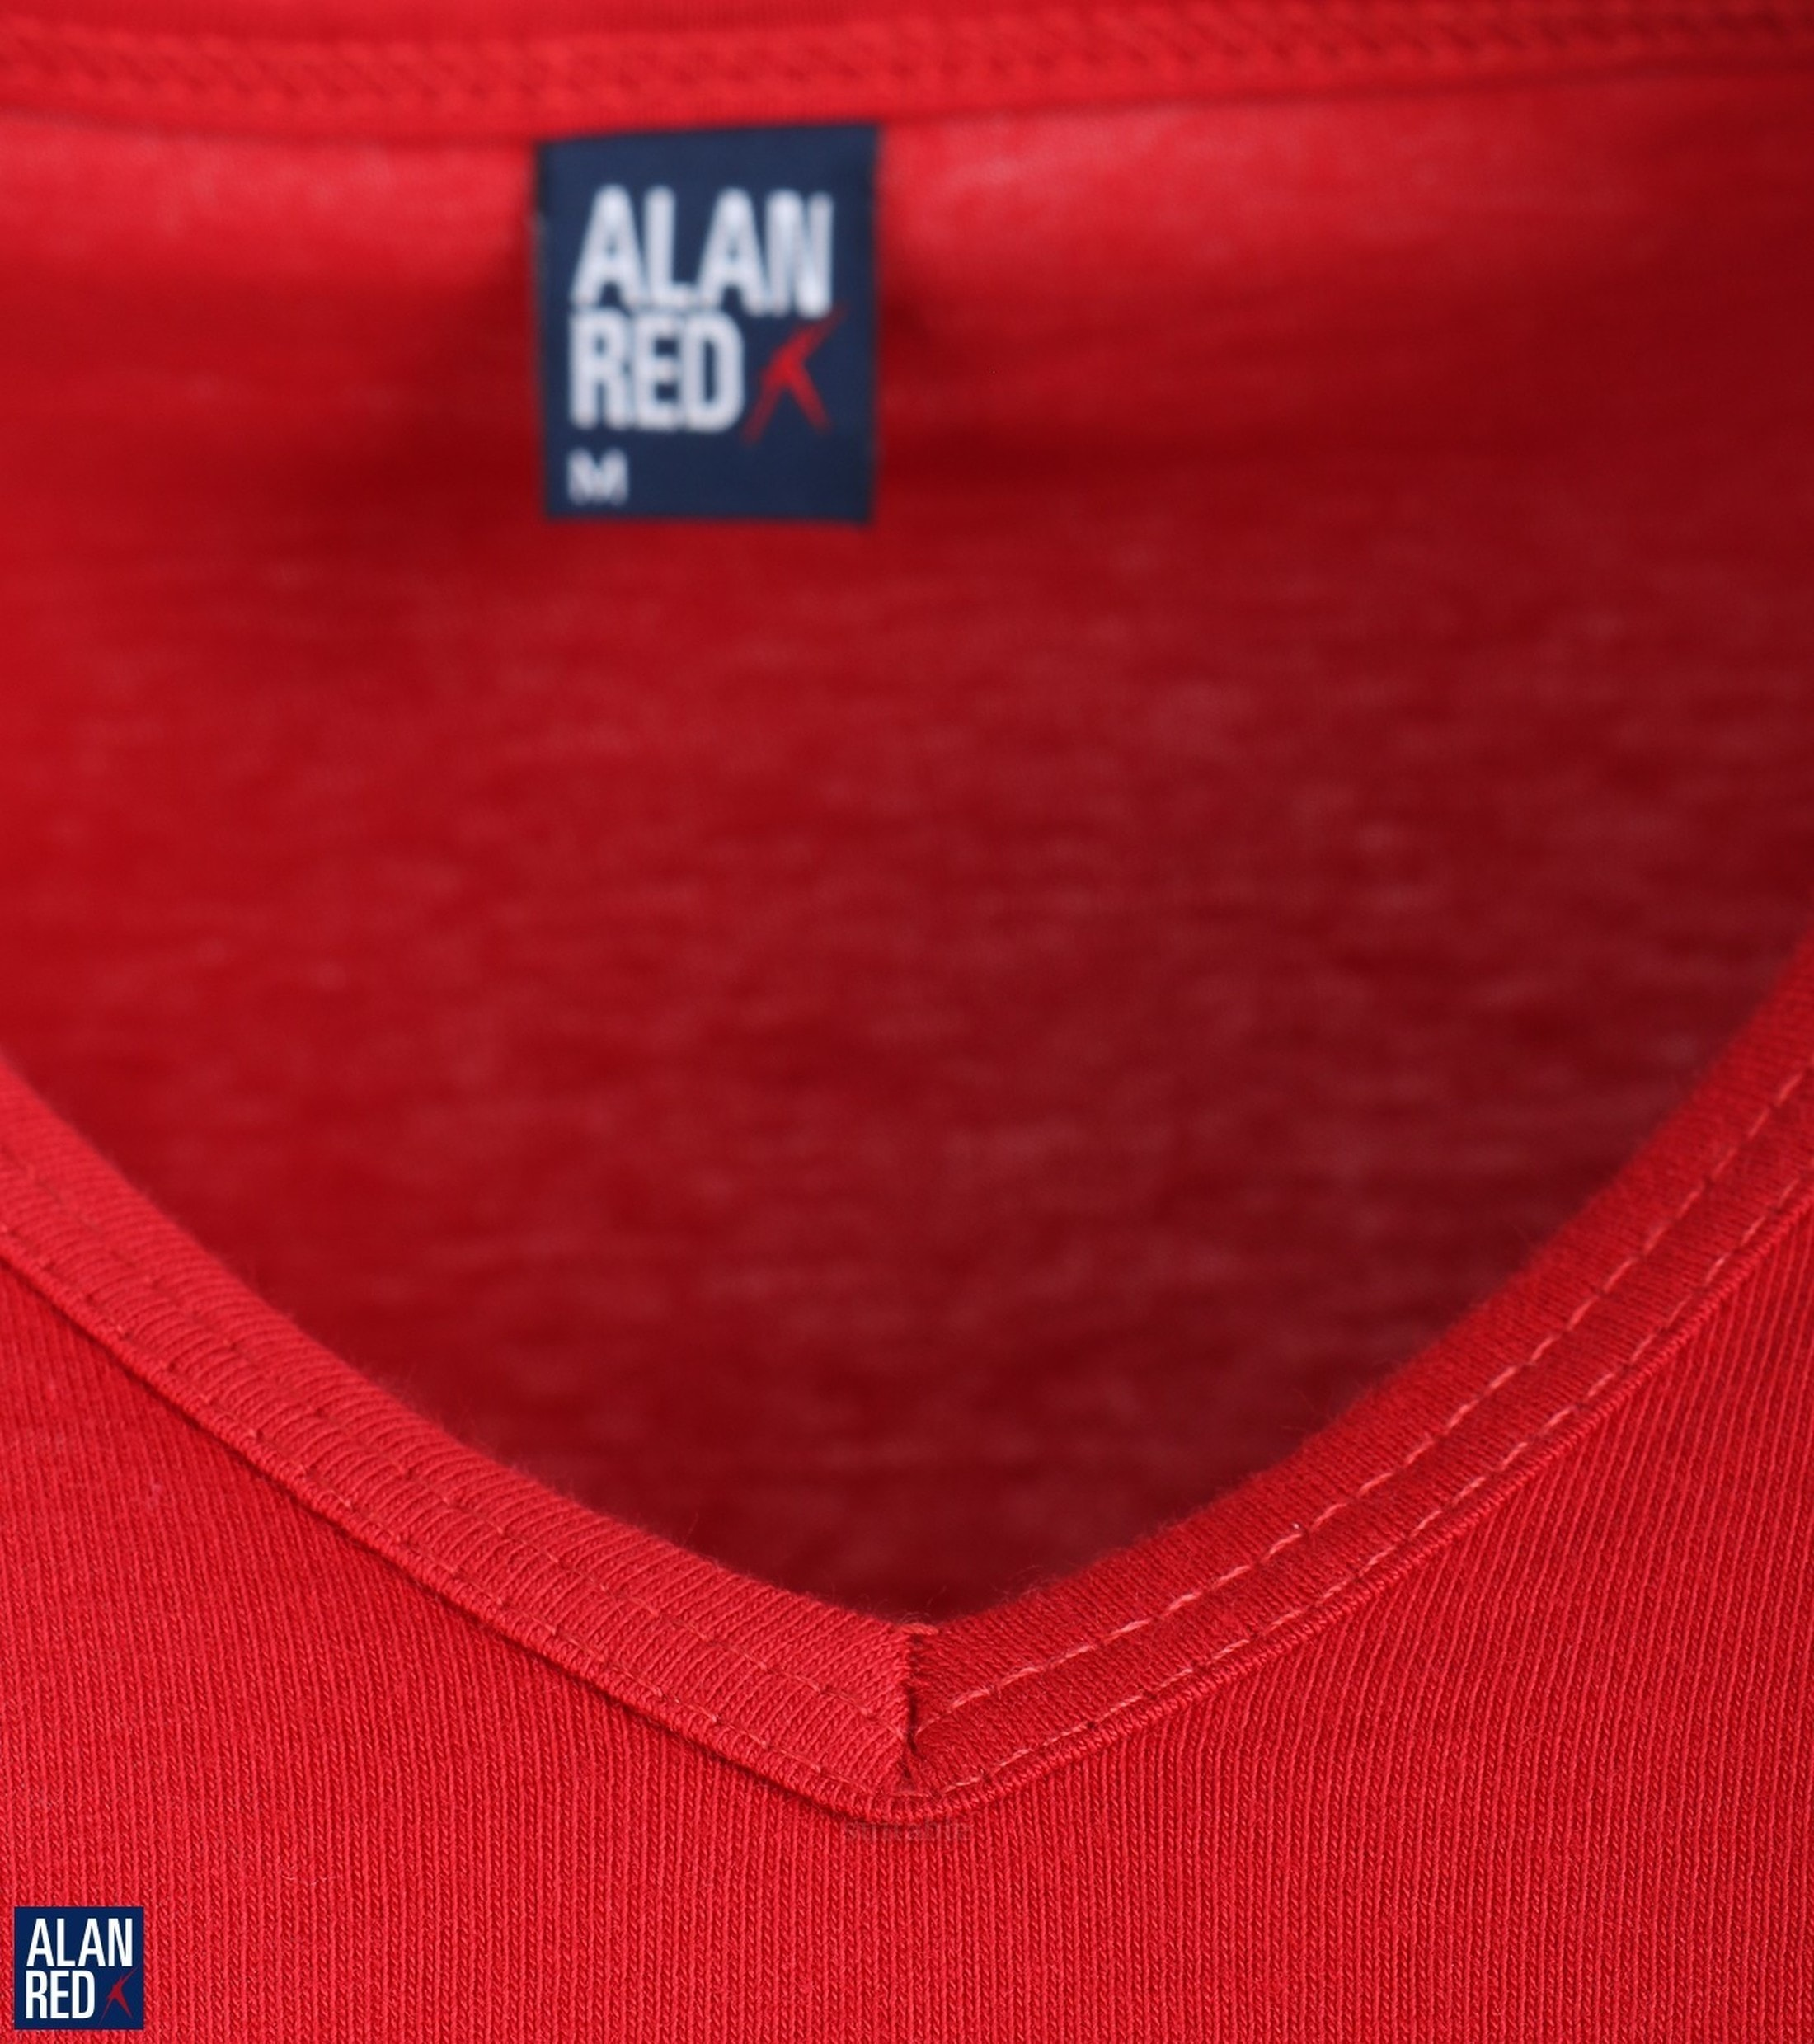 Alan Red Vermont T-shirt V-Neck Red 1-Pack foto 2